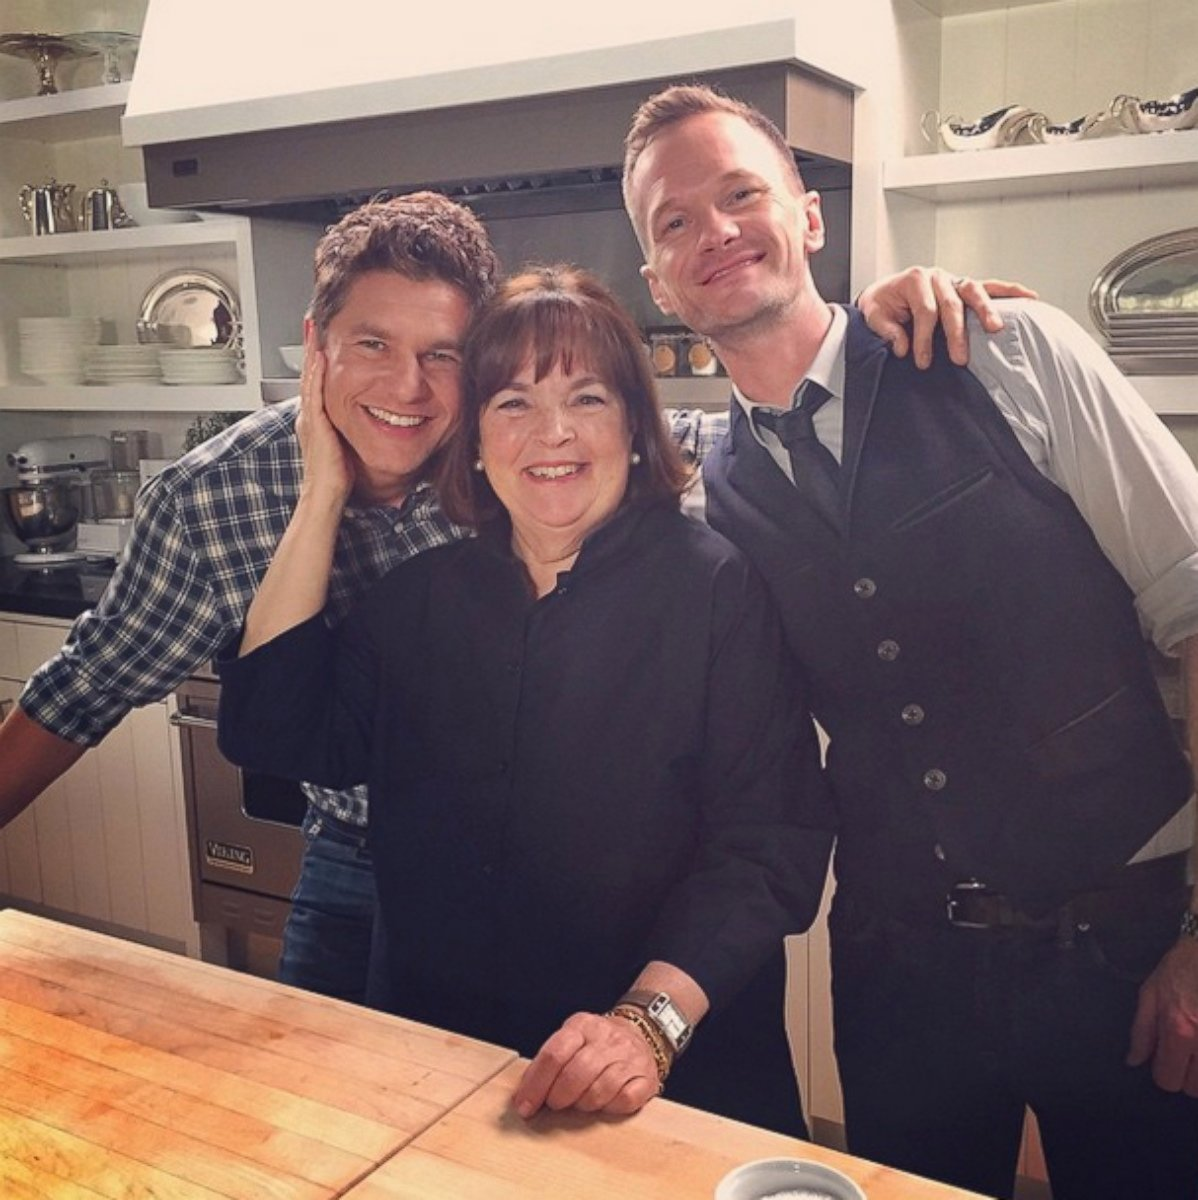 Barefoot Contessa Husband neil patrick harris and his husband cook with ina garten - abc news